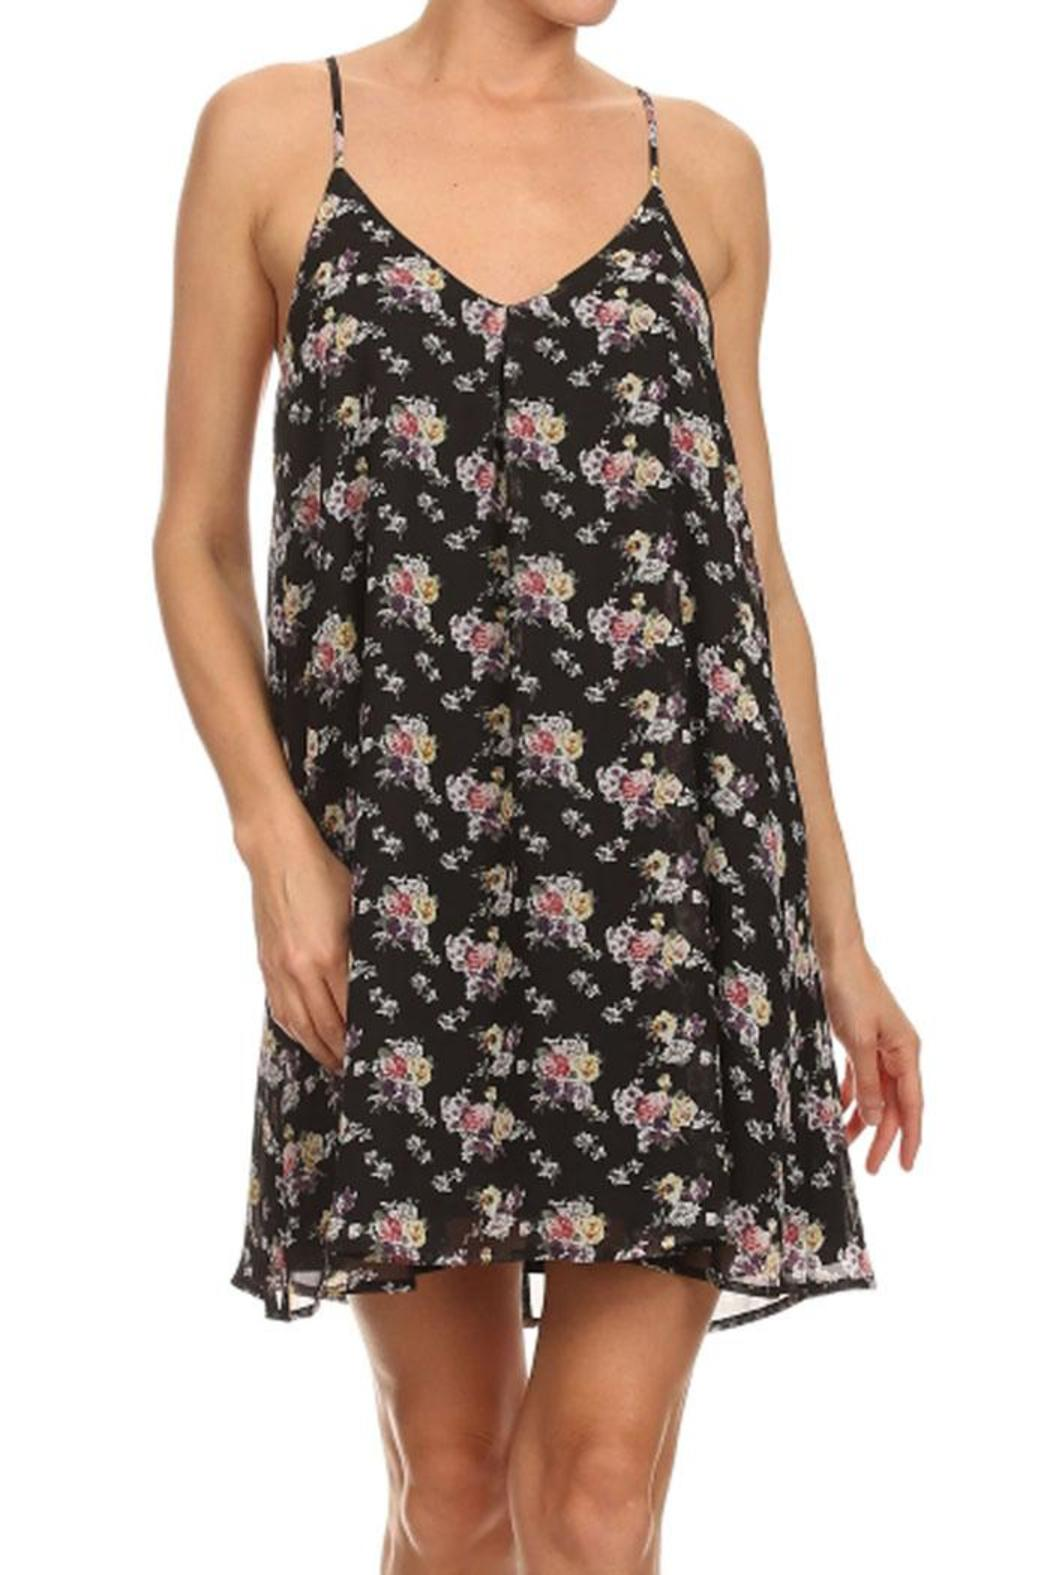 ac01c529bd8 Haute Monde Floral Print Dress from Orange County by Maple Boutique ...